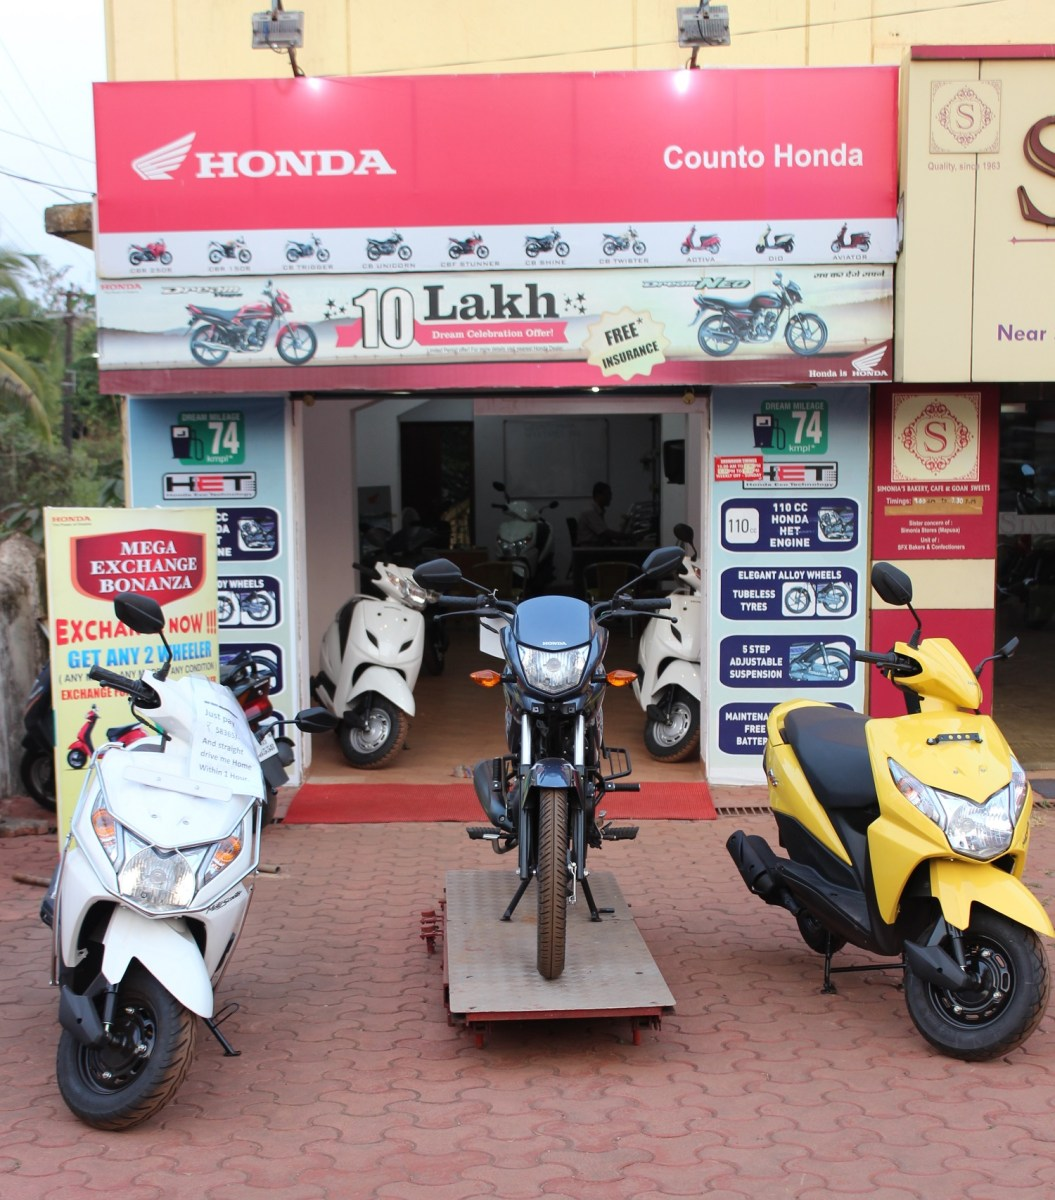 Counto Honda opens sales outlet in Porvorim, North Goa